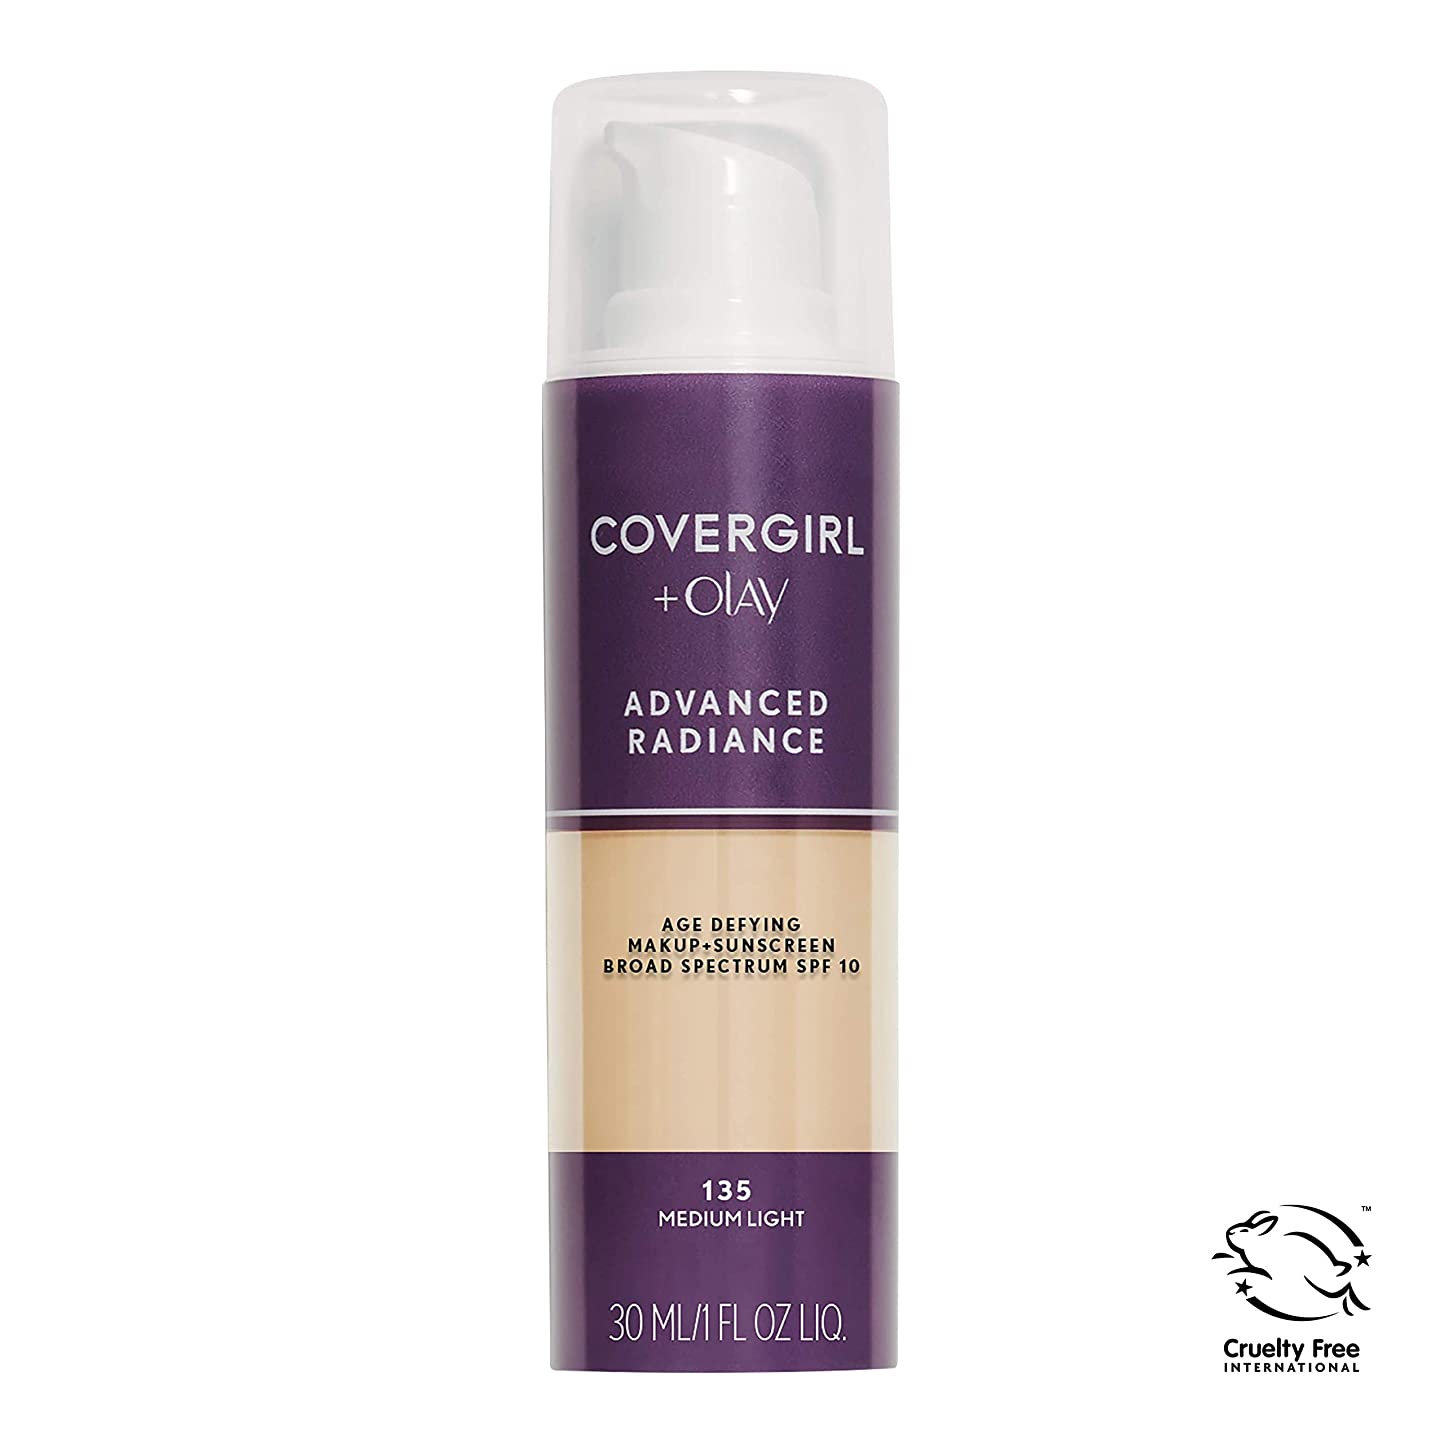 極めて重要なお肉代名詞COVERGIRL ADVANCED RADIANCE AGE-DEFYING MAKEUP #135 MEDIUM LIGHT